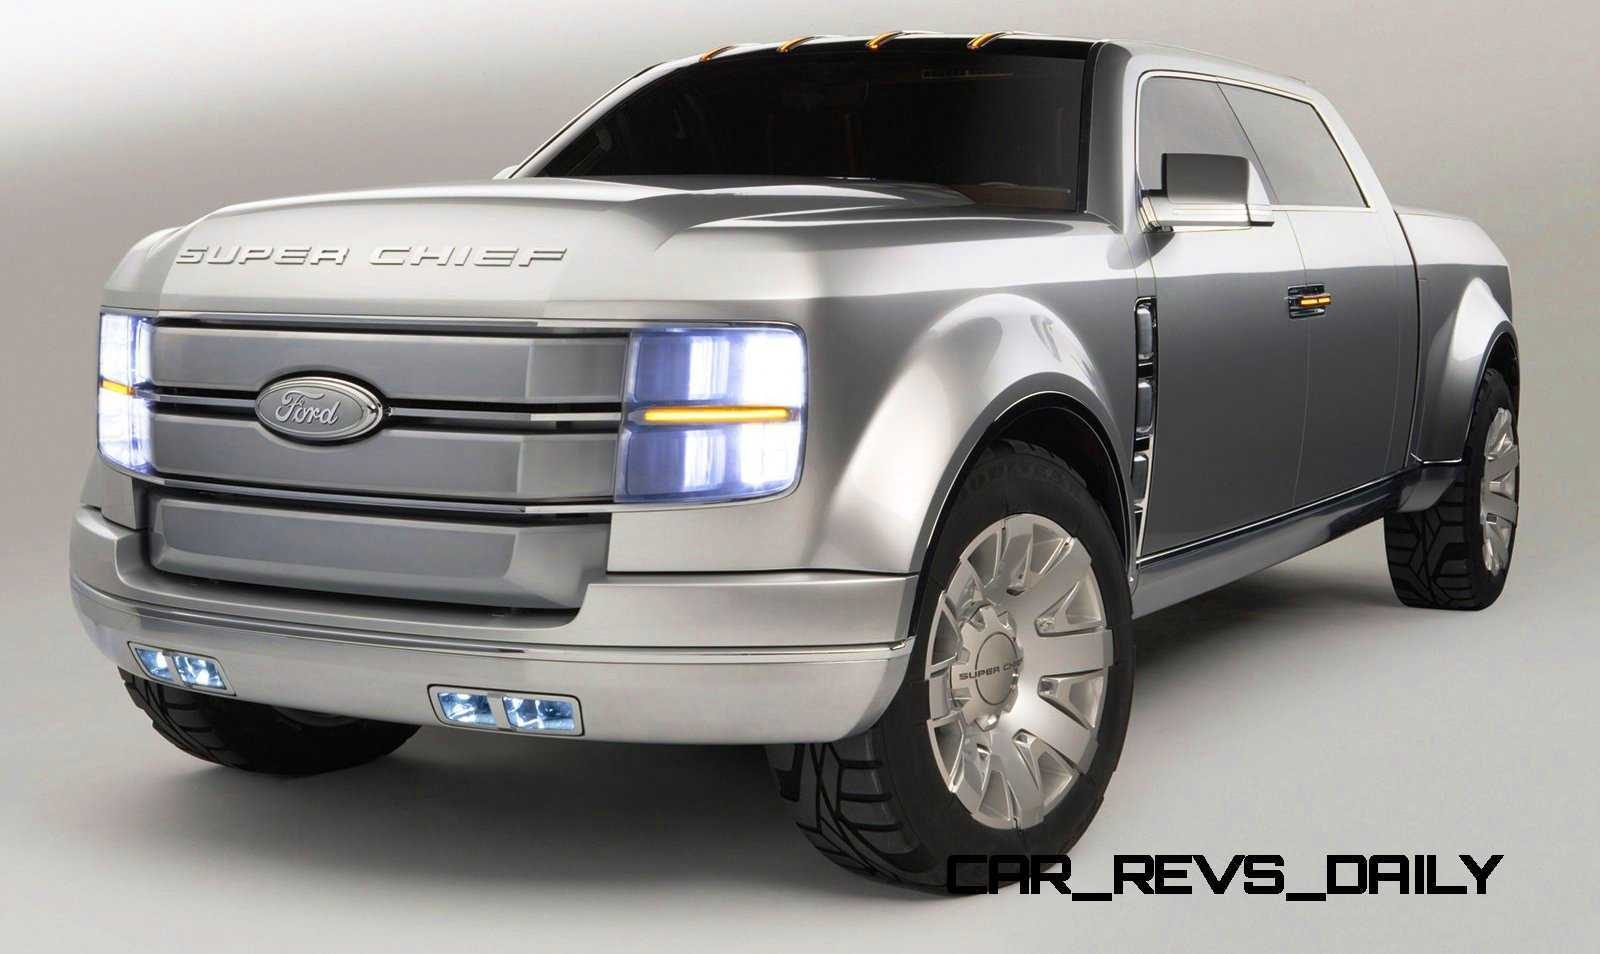 Ford-F-250_Super_Chief_Concept_2006_1600x1200_wallpaper_08